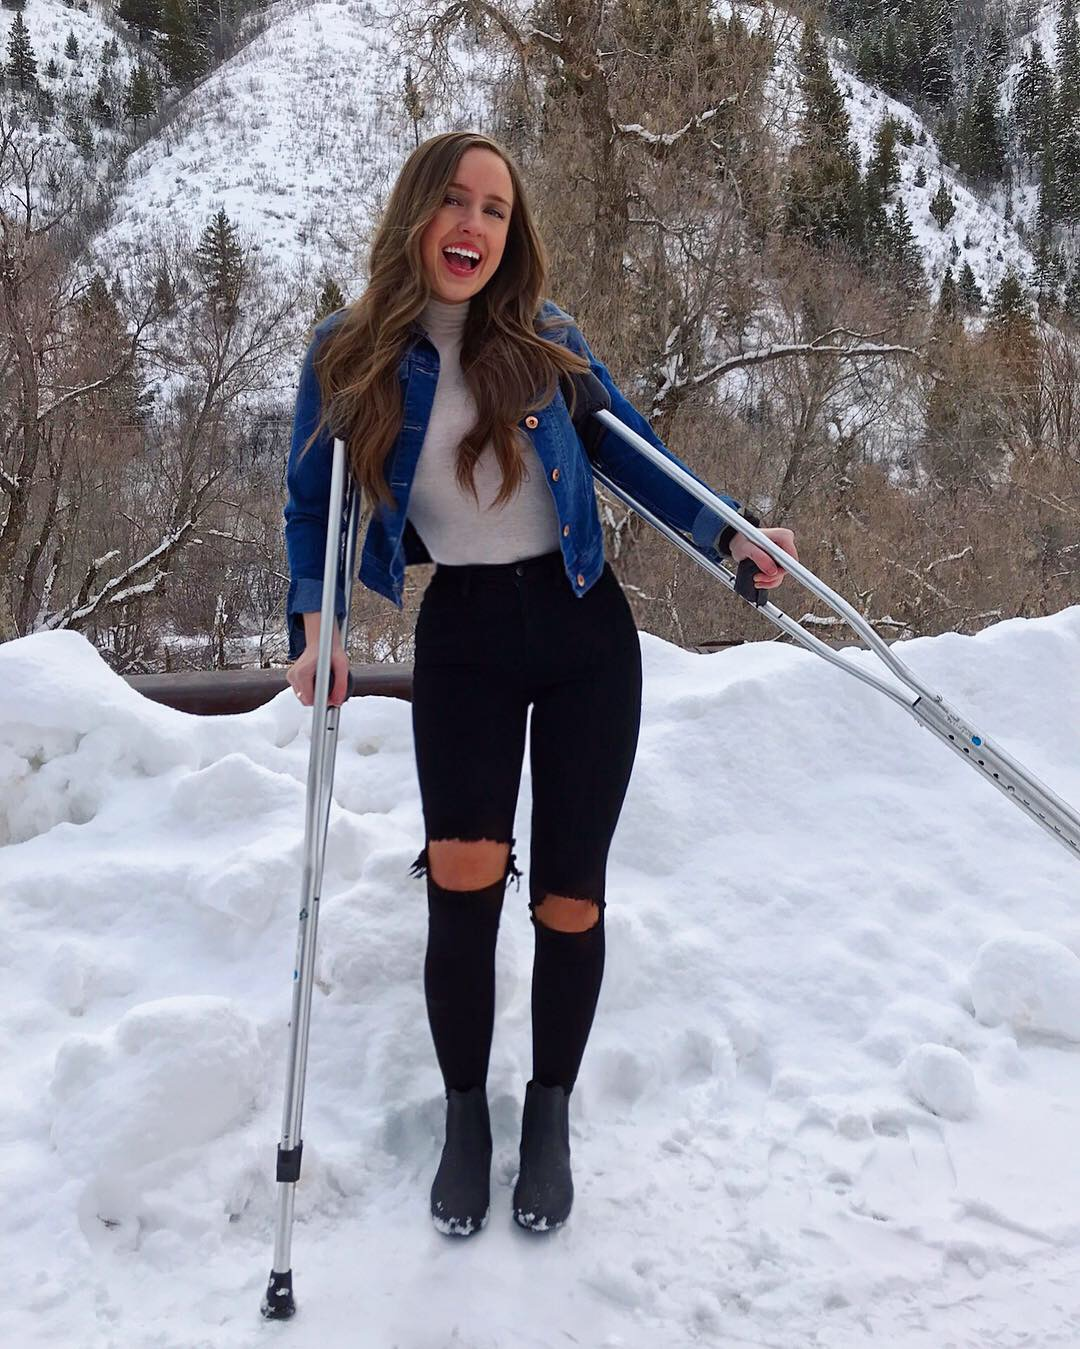 Monique McDown on crutches in Provo, Utah, after her right leg was paralyzed in an accident while she was serving a mission in Brazil.